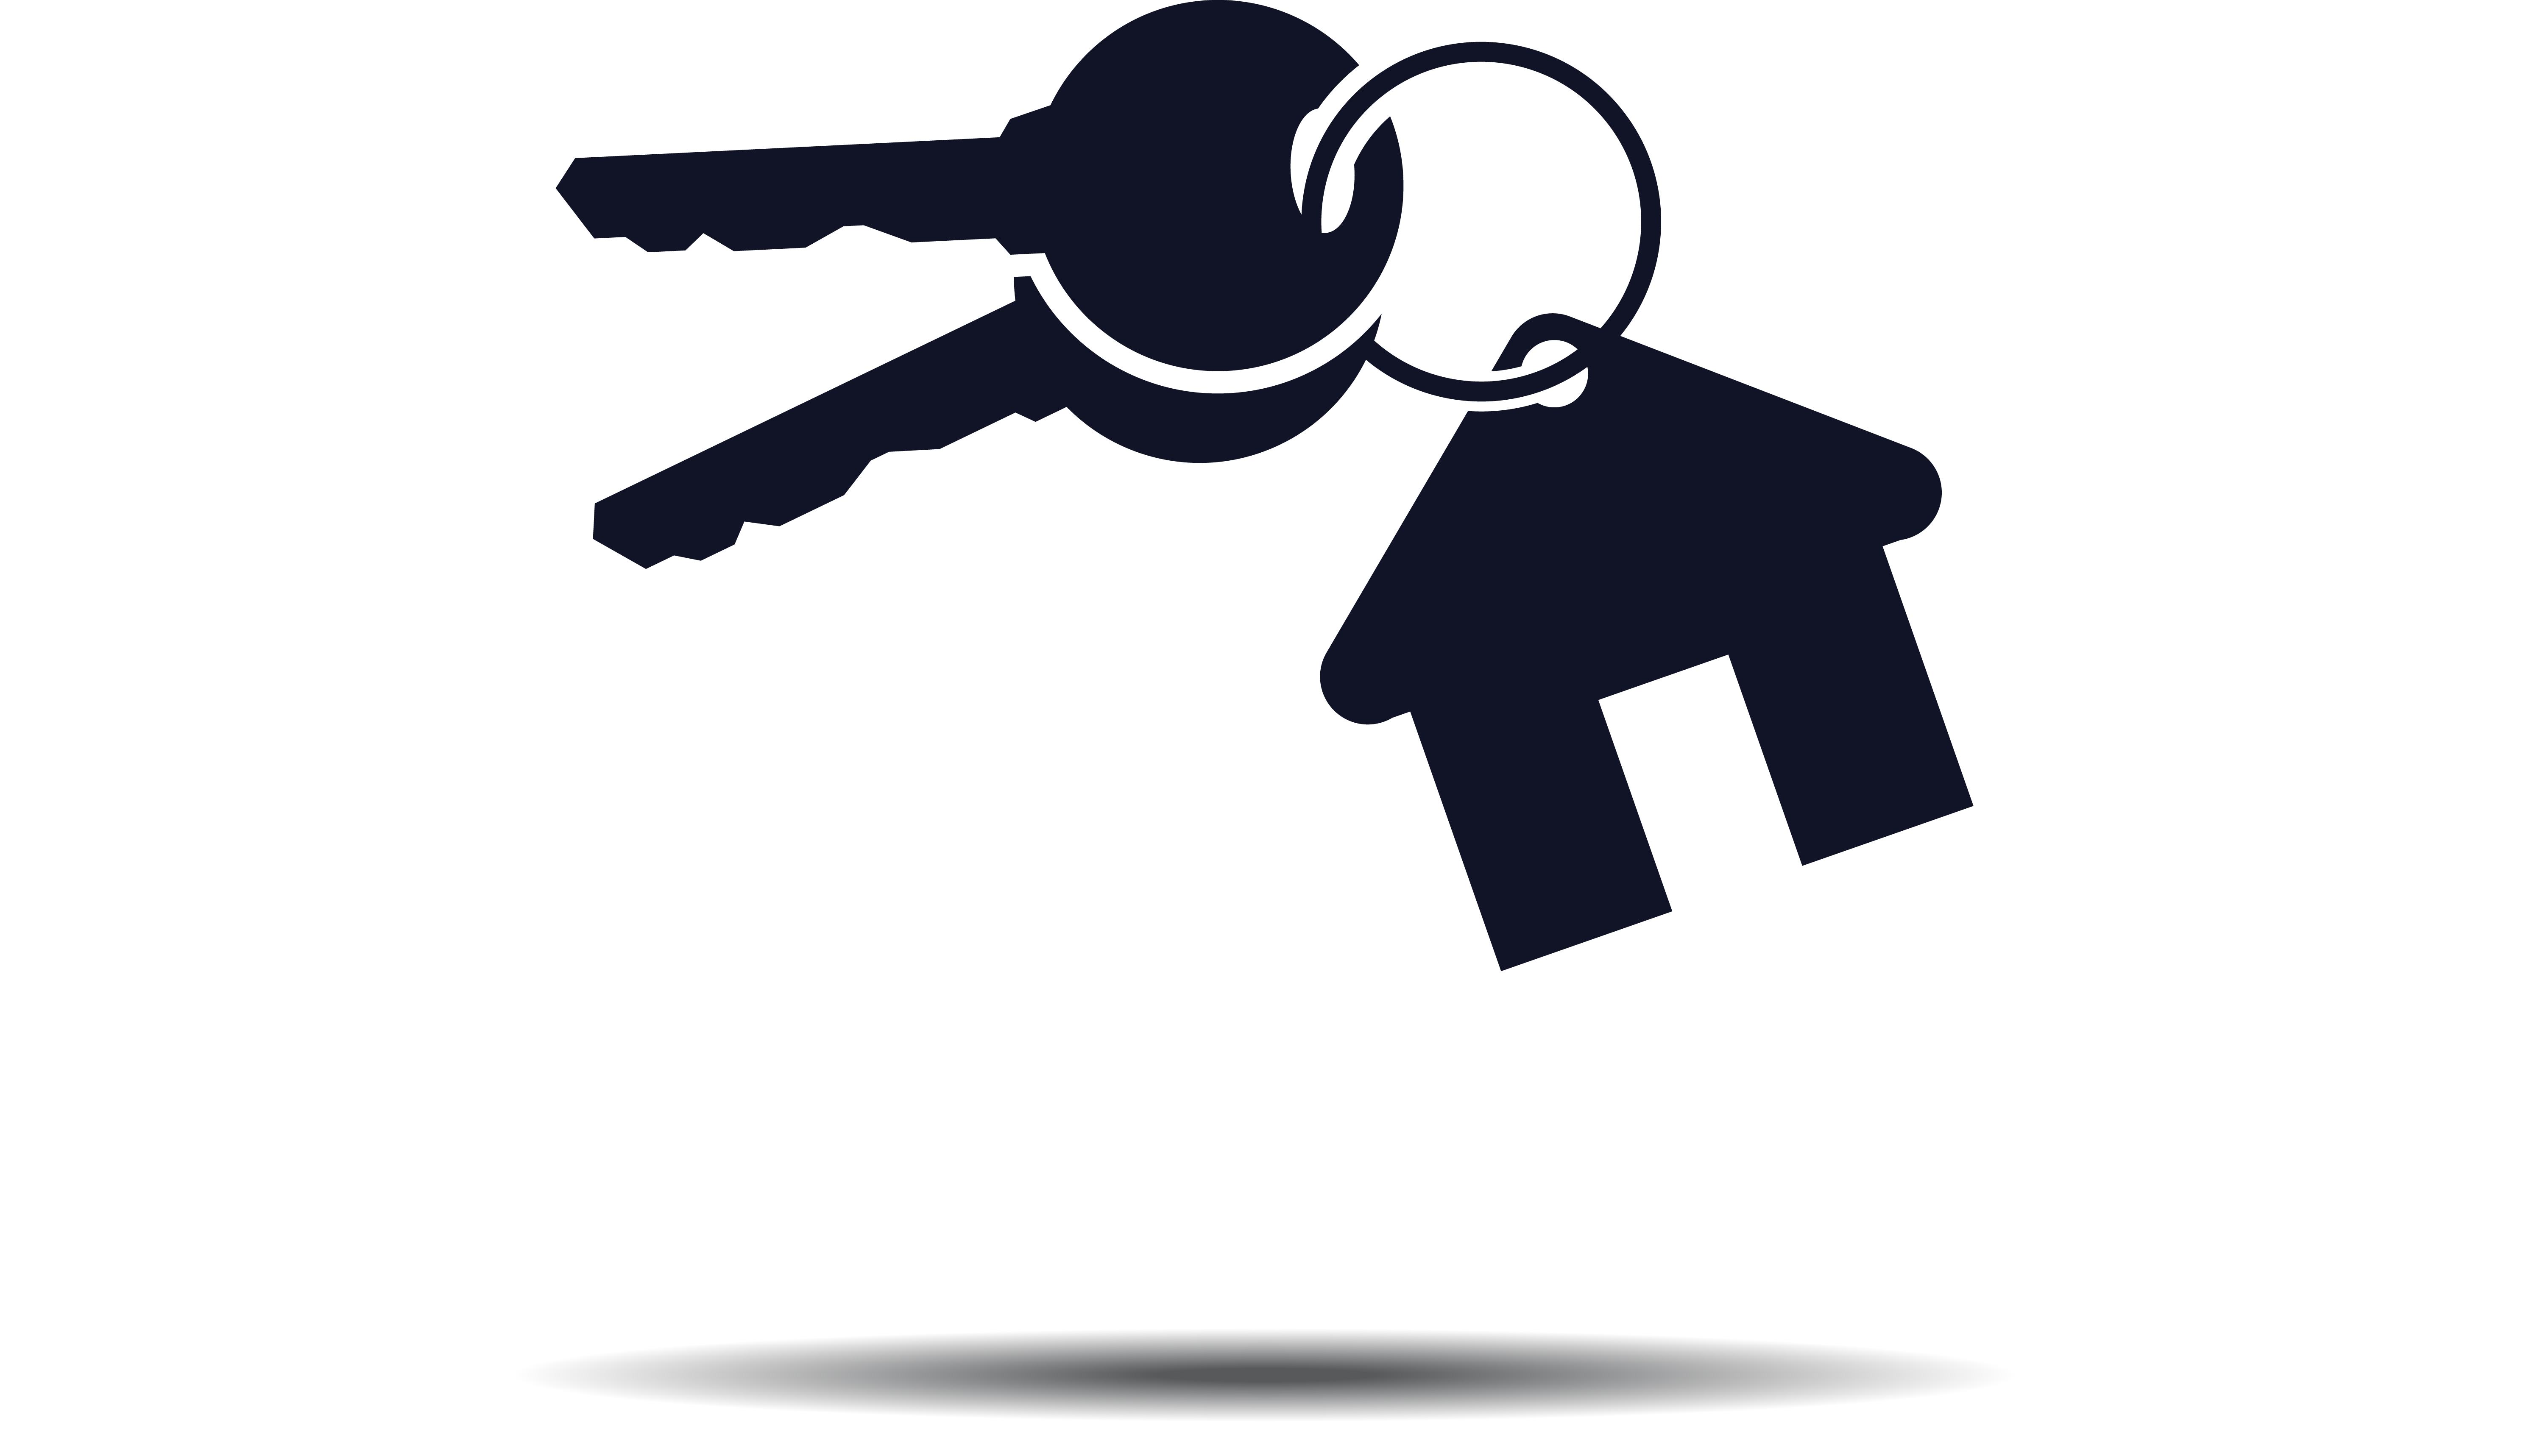 House keys clipart clipart freeuse library Car Key Silhouette at GetDrawings.com | Free for personal use Car ... clipart freeuse library